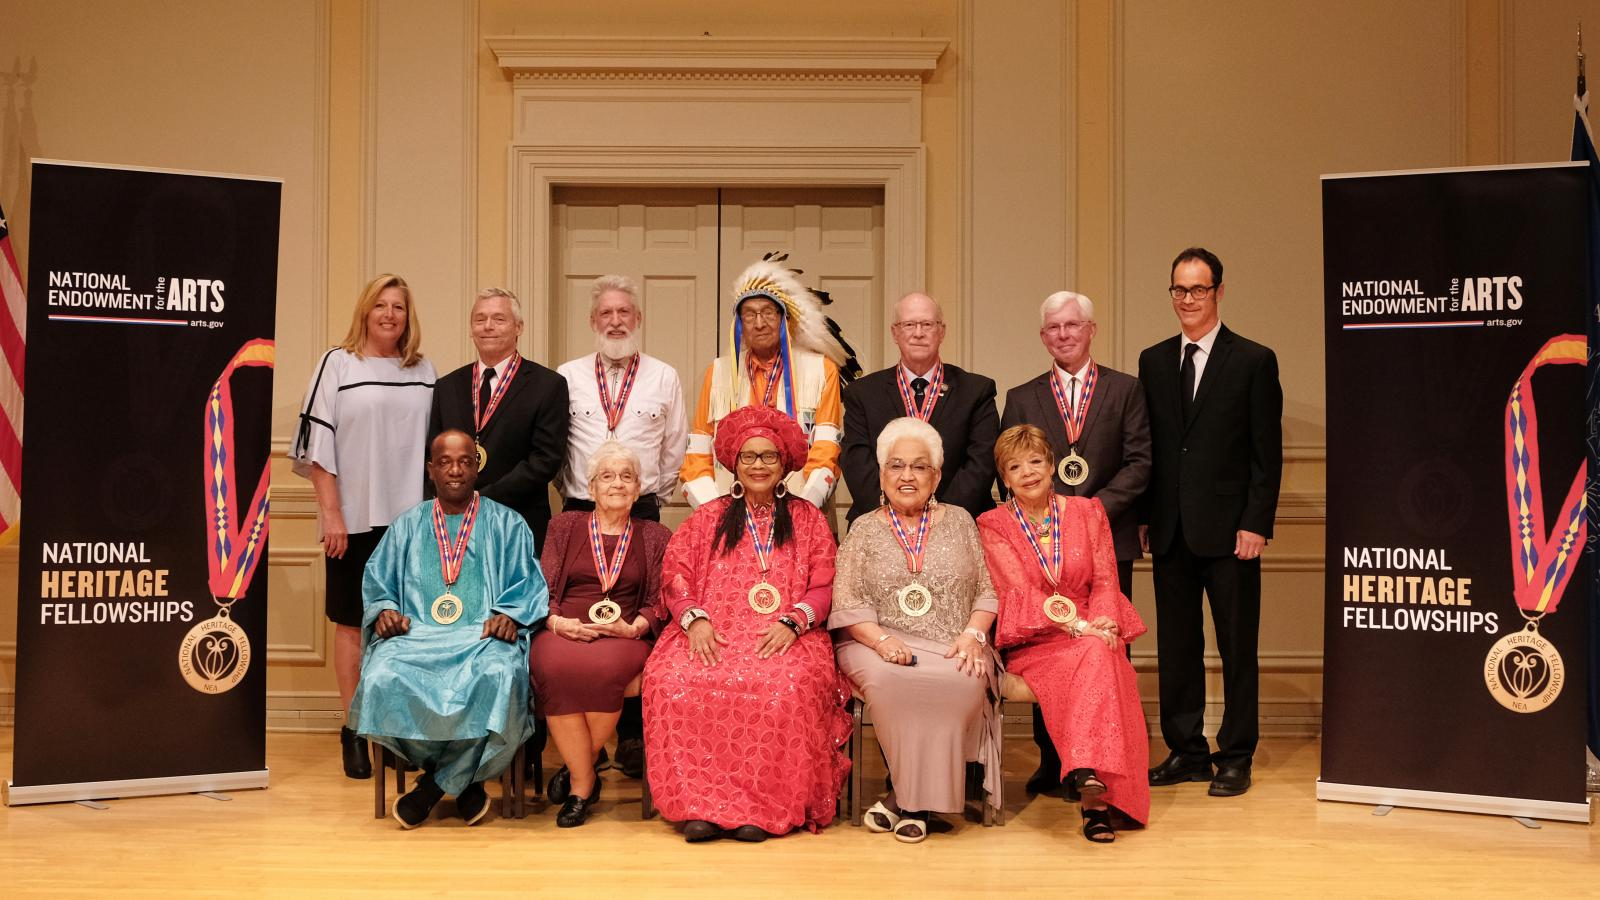 Group of folk artists posing for photo with NEA chairman at left and Folk Arts Director at right.